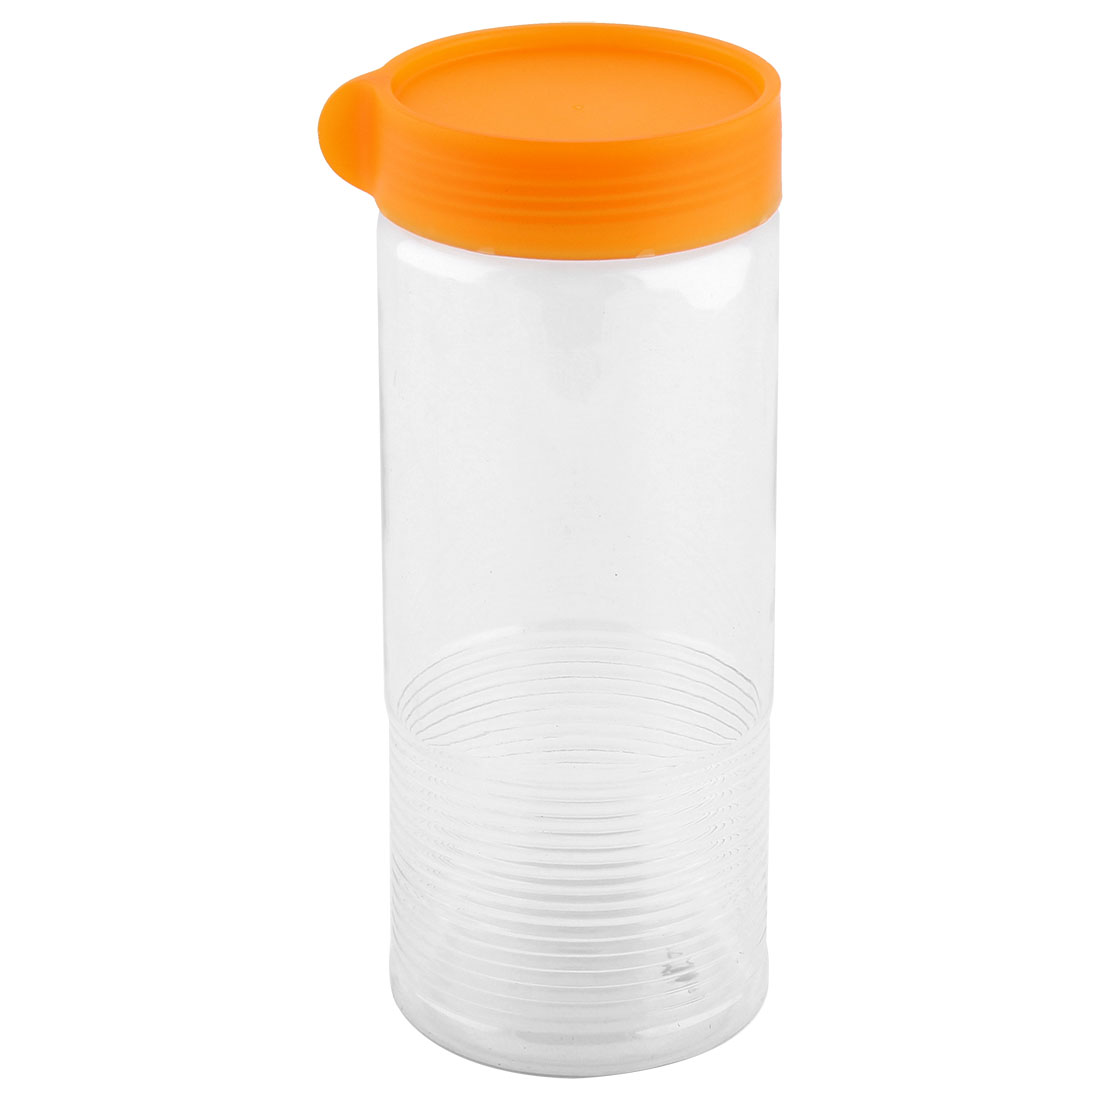 Household Plastic Cylindrical Shaped Food Storage Lid Seal Box Container Orange 900ML